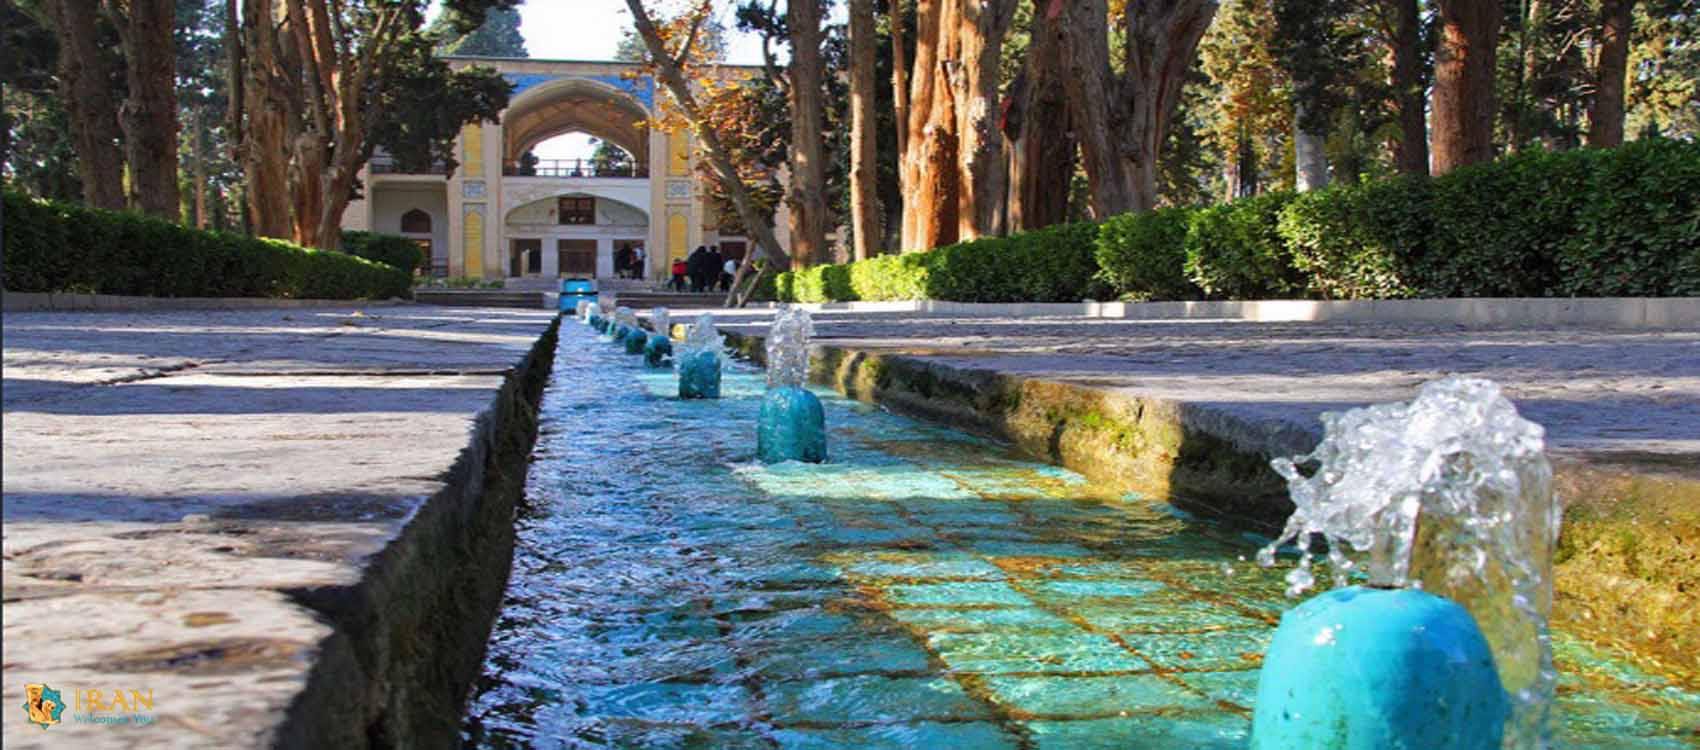 Kashan UNESCO Sites,Kashan Attractions,Sialk Hill,Fin Garden,Iran Welcomes You Travel agency, Iran tour operator, Iran tour,Achaemenes.